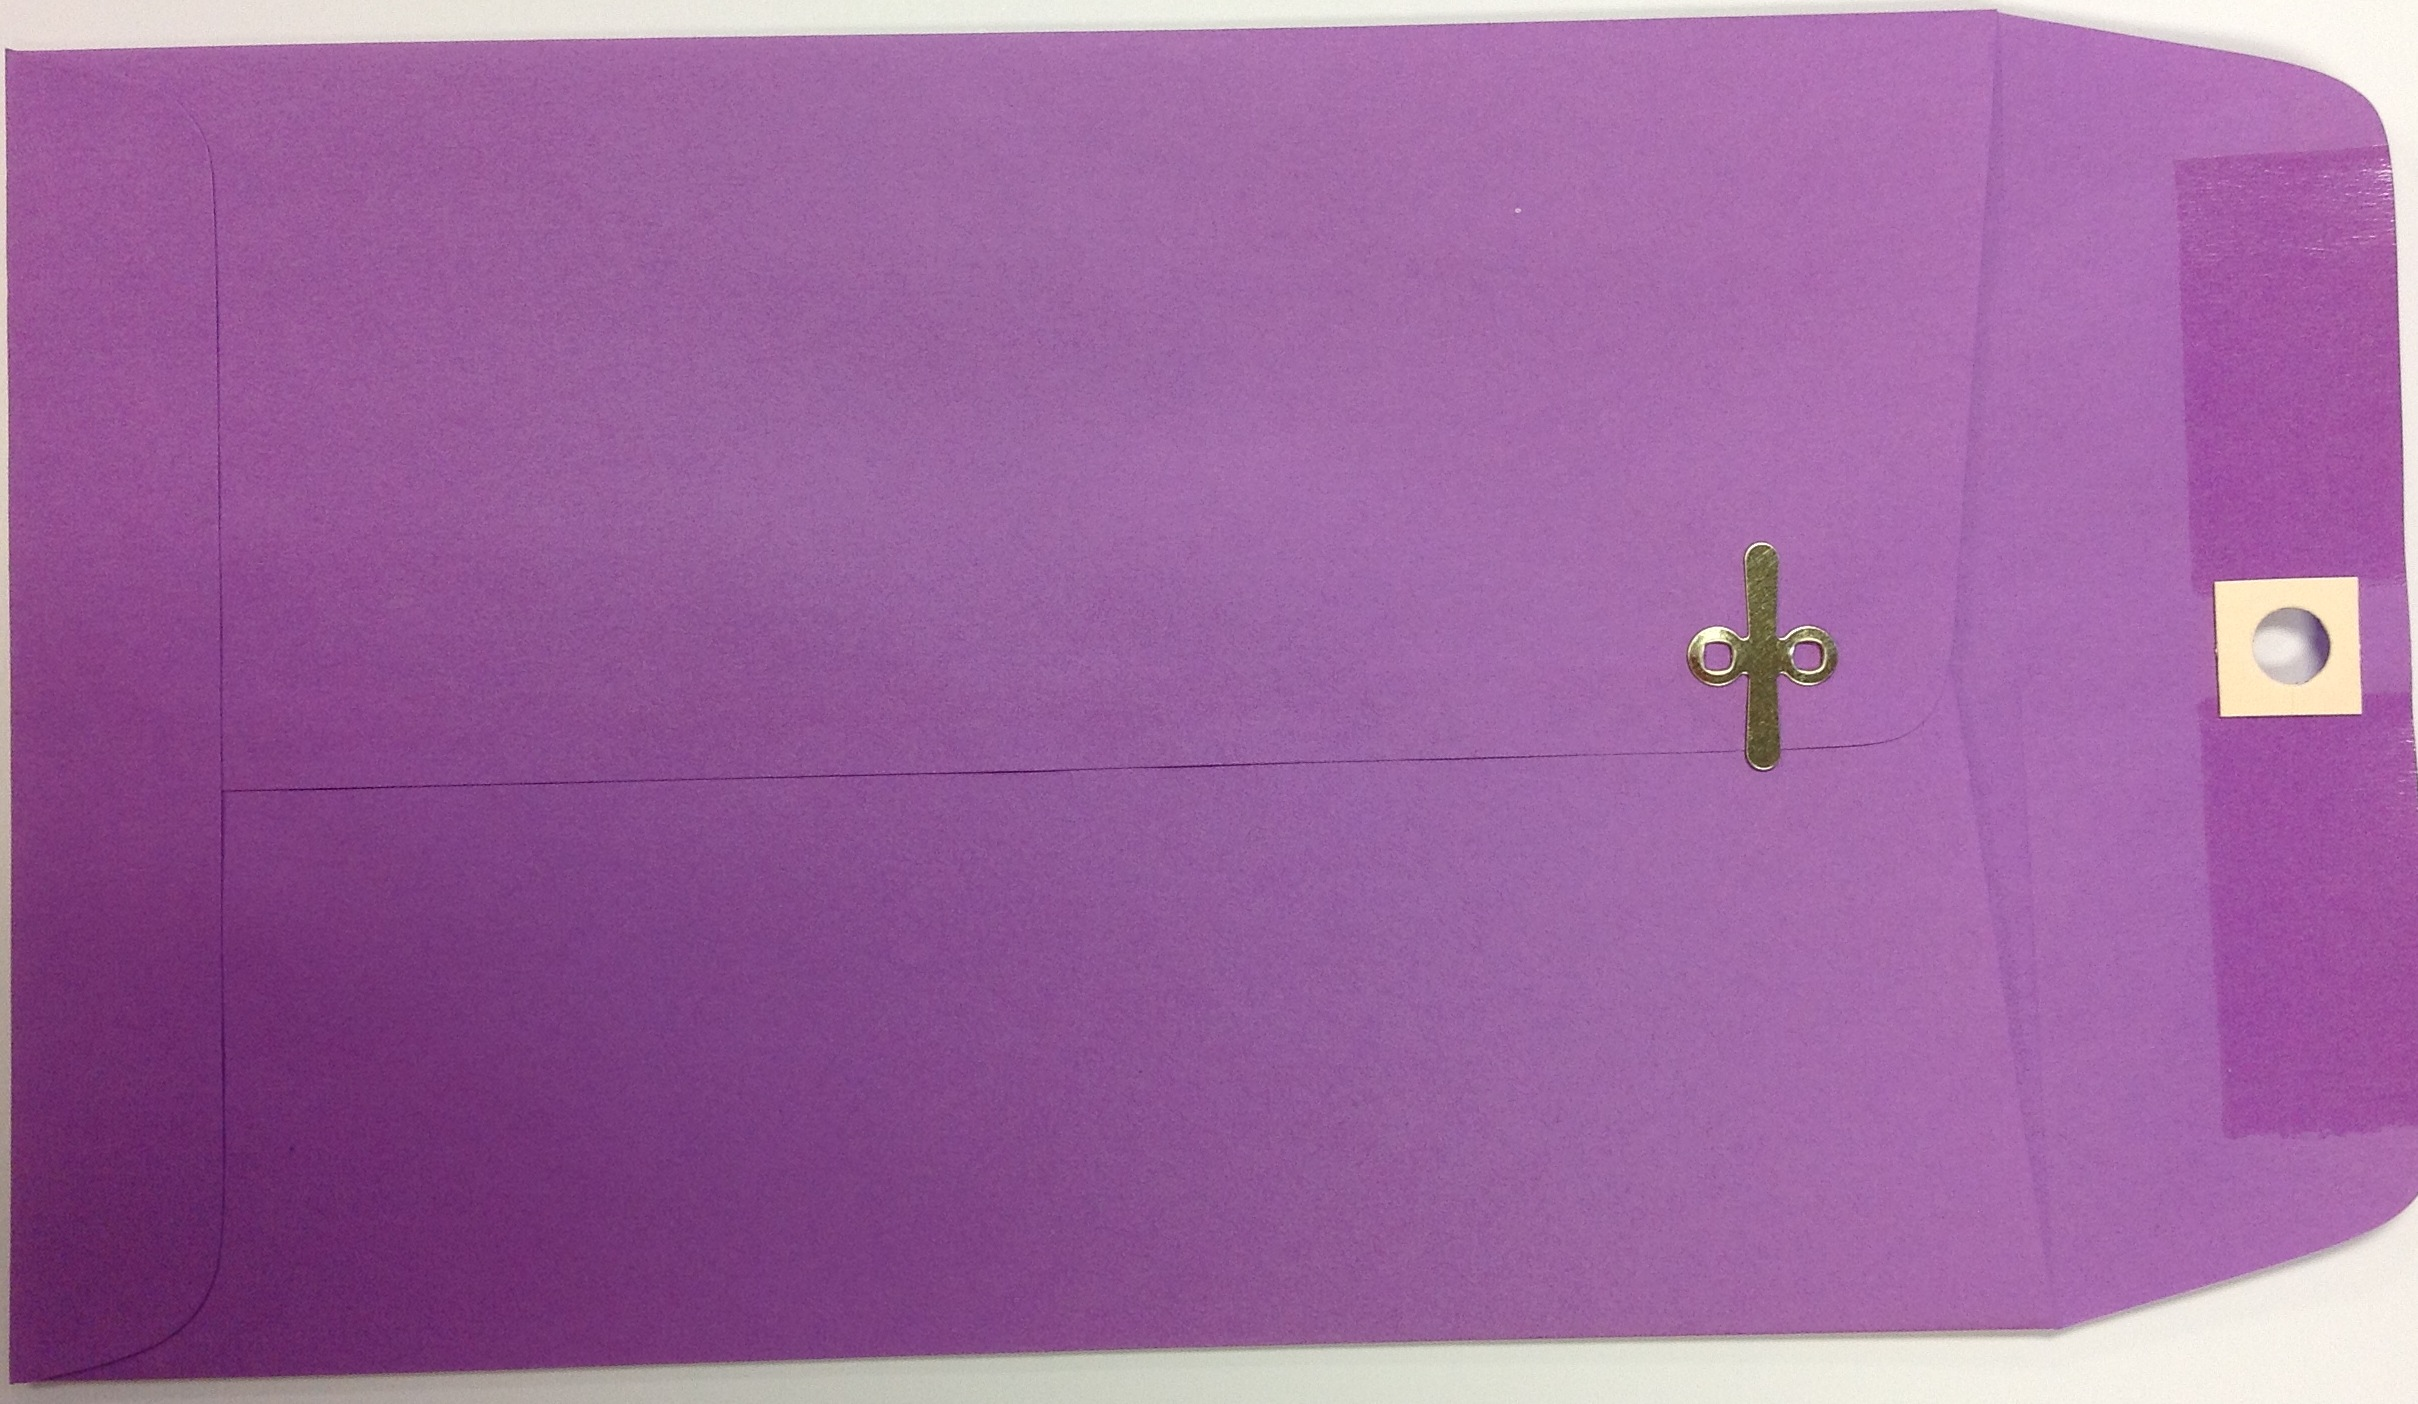 6X9 CLASP ENVELOPES PURPLE 10s